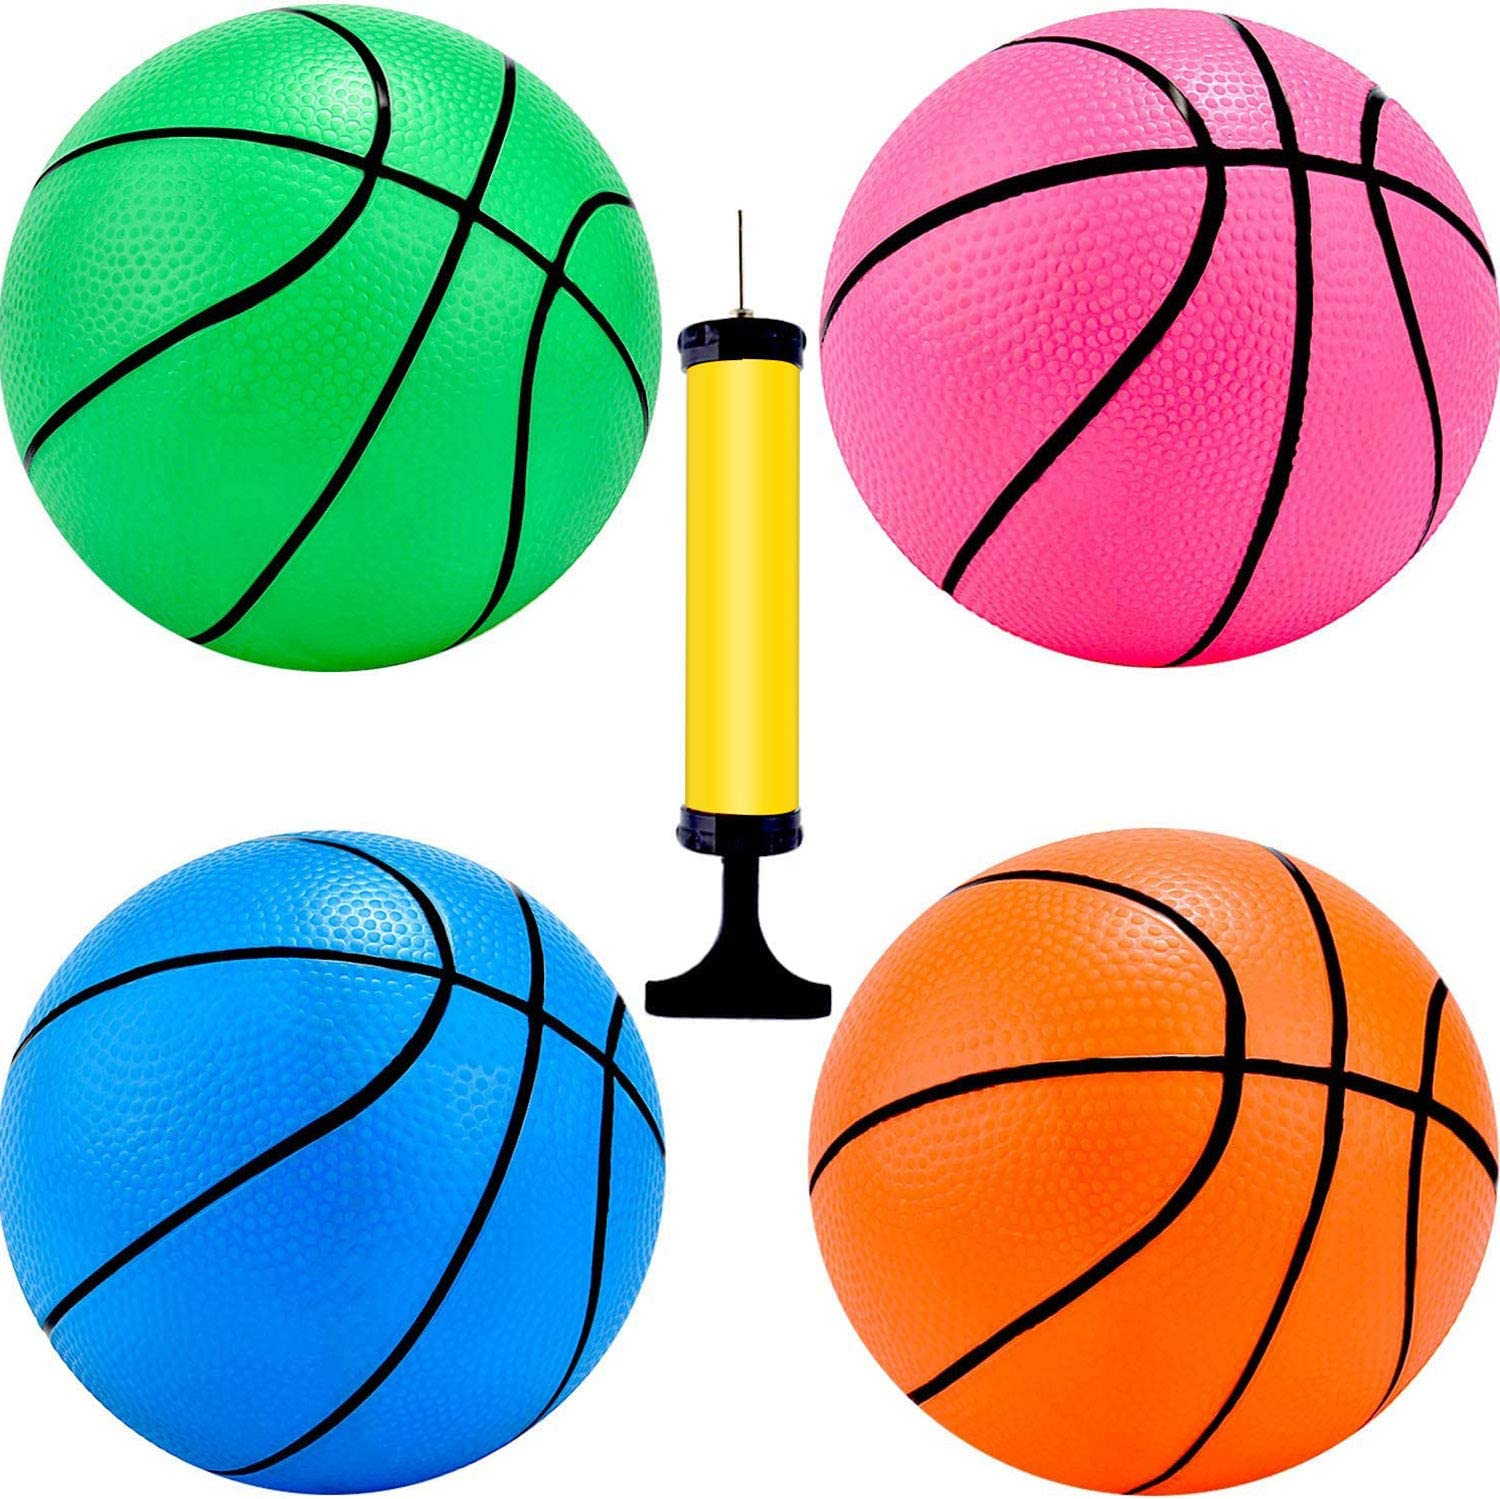 6x Sports Ball Inflatable Small Mini Hoop Basketballs With Pump 4 Inch Balls